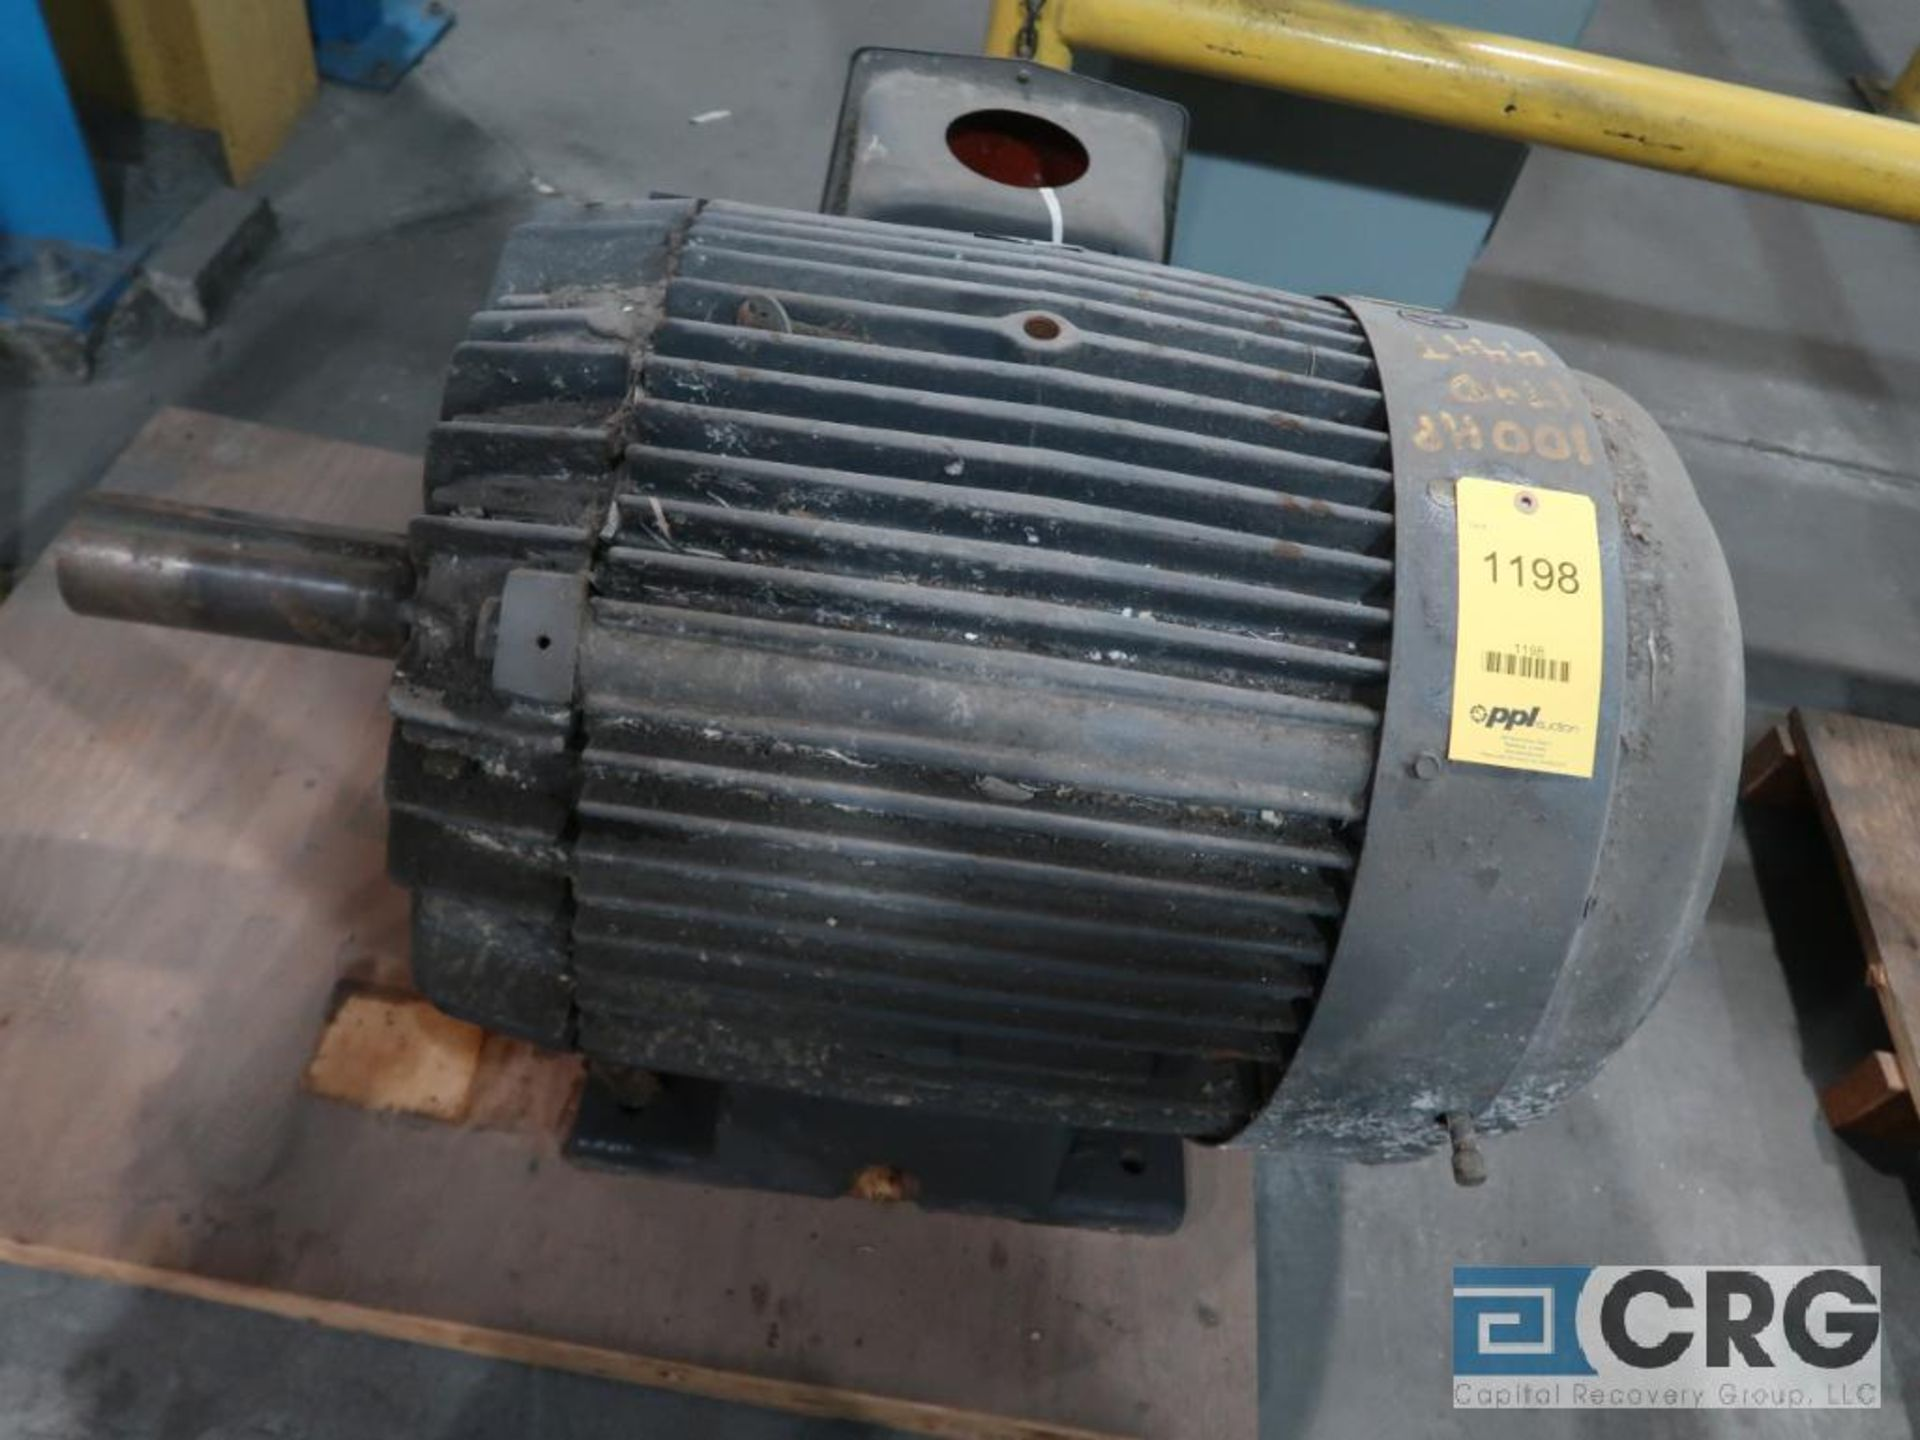 Pacemaker electric motor, 100/50 HP, 1770/885 RPMs, 460 volt, 3 ph., 444T frame (Finish Building)